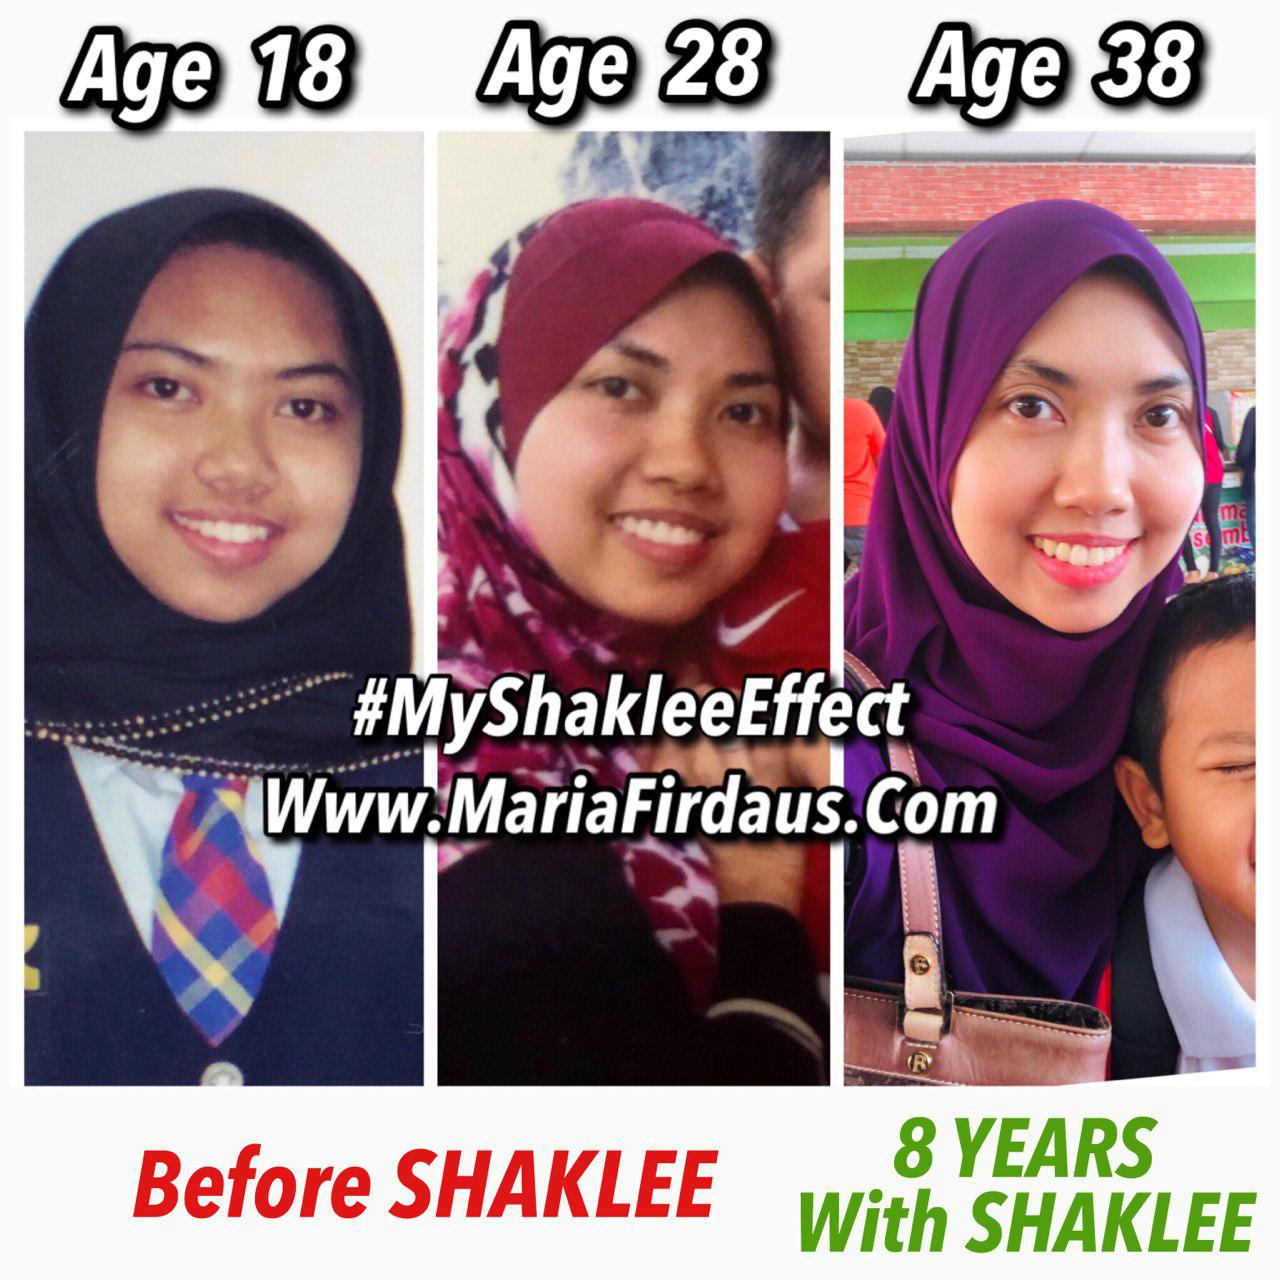 My Shaklee Effect!